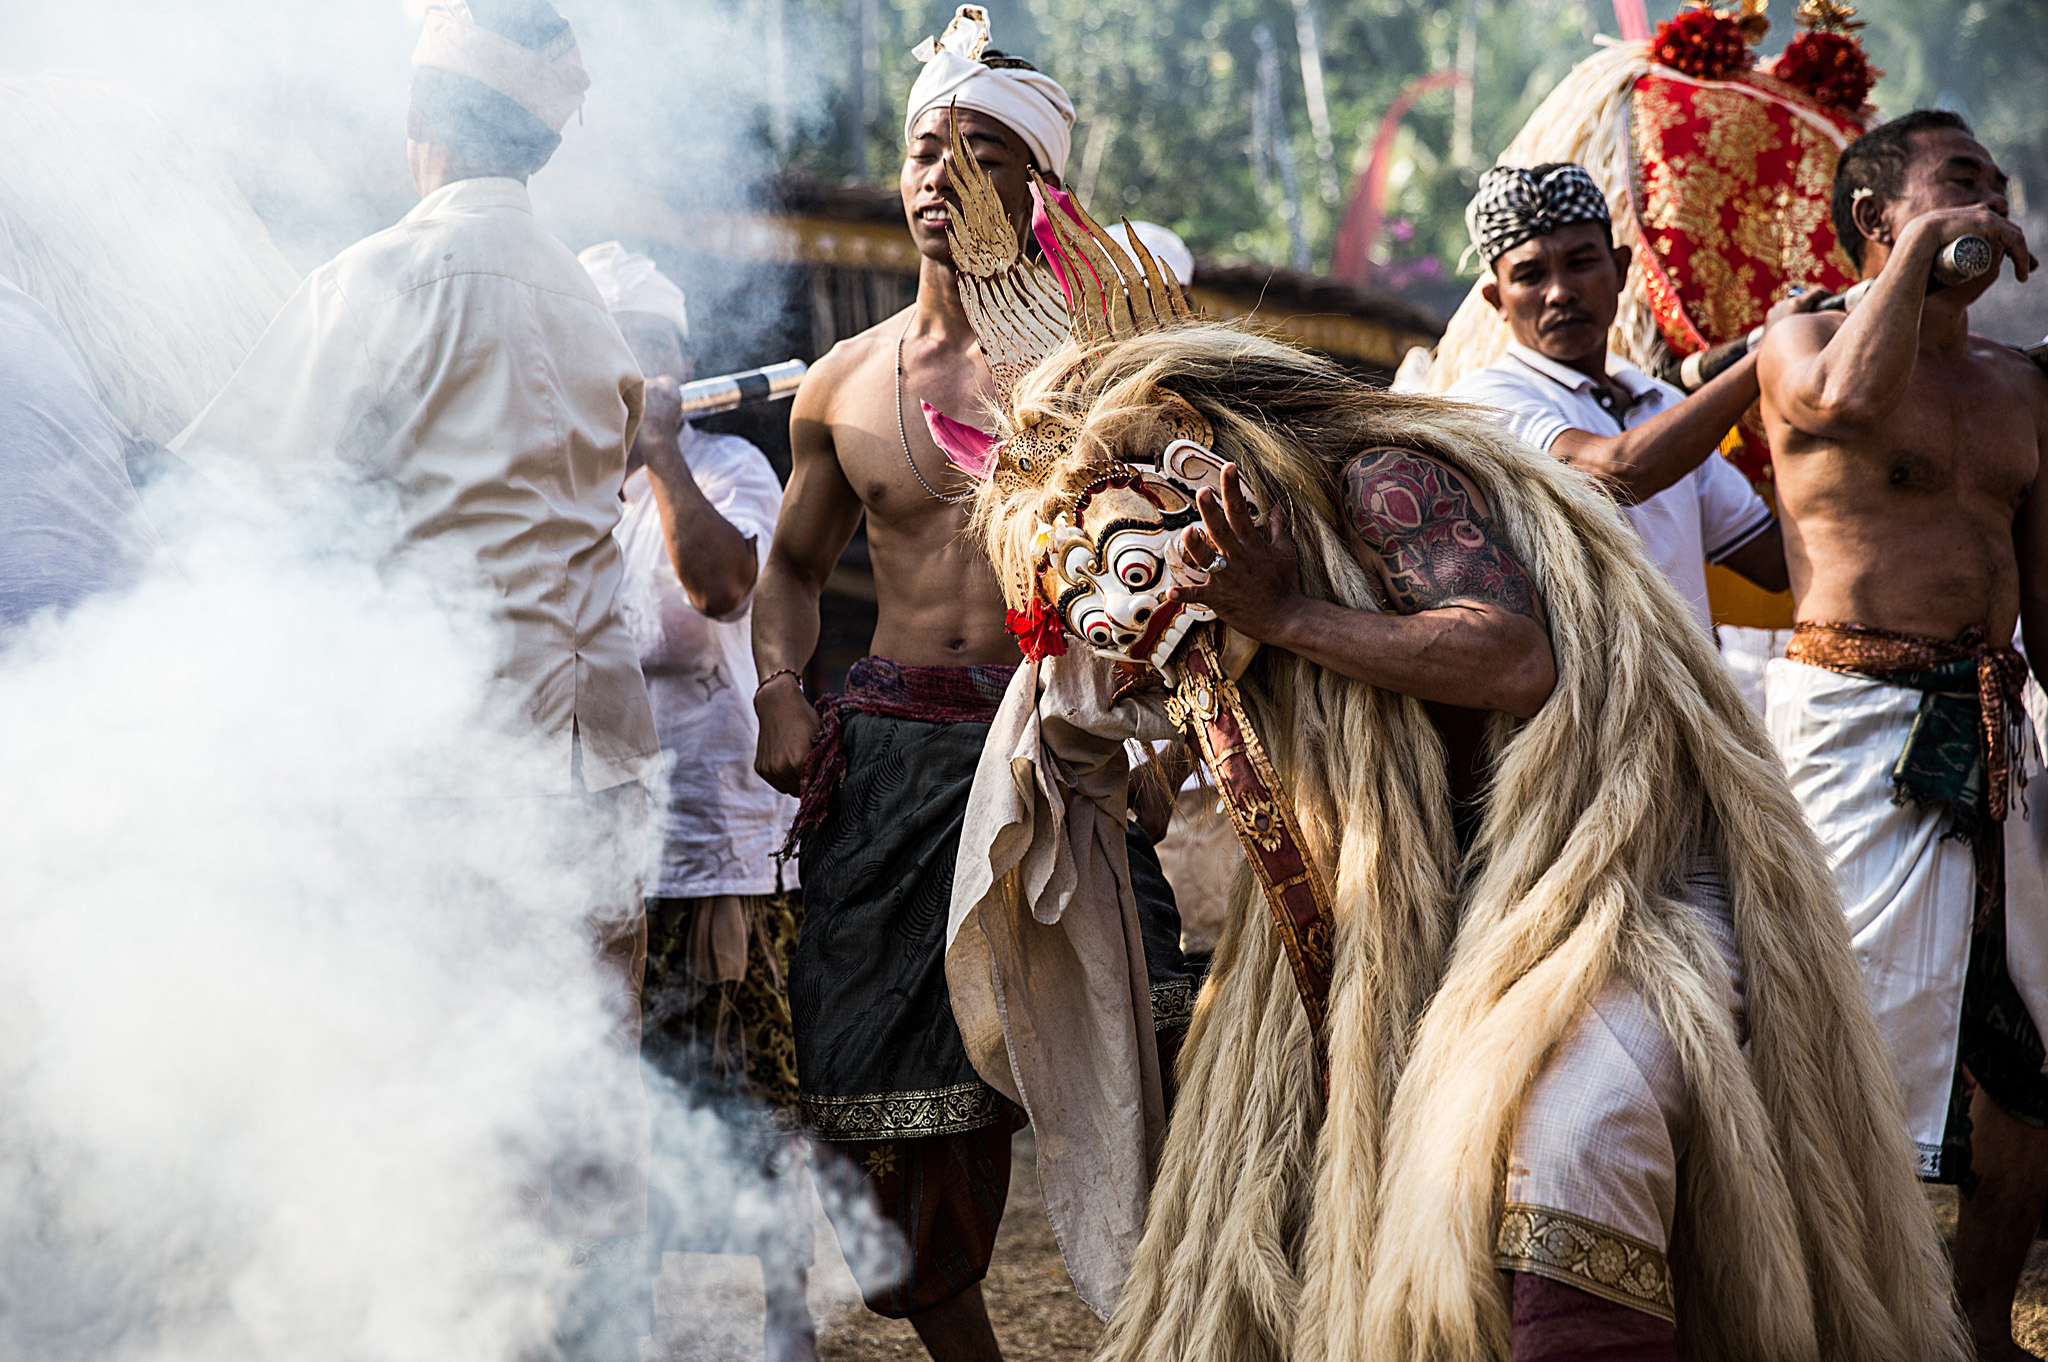 Balinese Villagers Celebrate The Annual Ngusaba Puseh Ritual...KARANGASEM, BALI, INDONESIA - SEPTEMBER 11: A Balinese man in a state of trance dances wearing a sacred Rangda mask during a sacred ritual of Ngusaba Puseh at Selumbung Village on September 11, 2014 in the Karangasem District, Bali, Indonesia. The Ngusaba Puseh  ritual is performed once a year to celebrate the ancestors of the local community and show gratitude to God.  (Photo by Agung Parameswara/Getty Images)